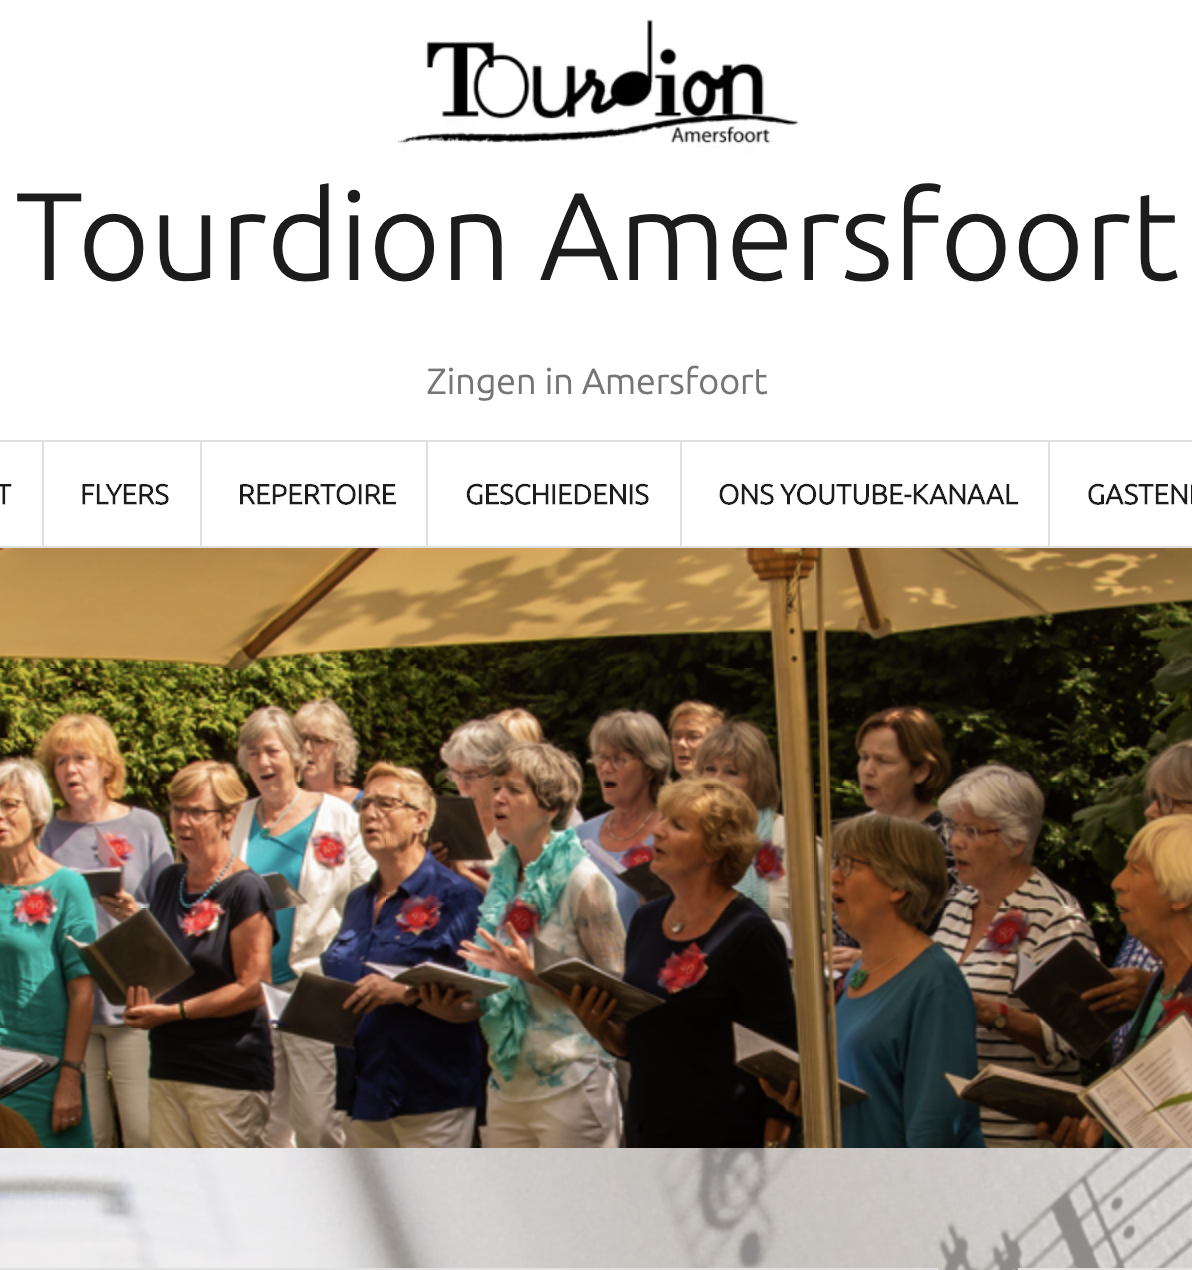 Tourdion Amersfoort